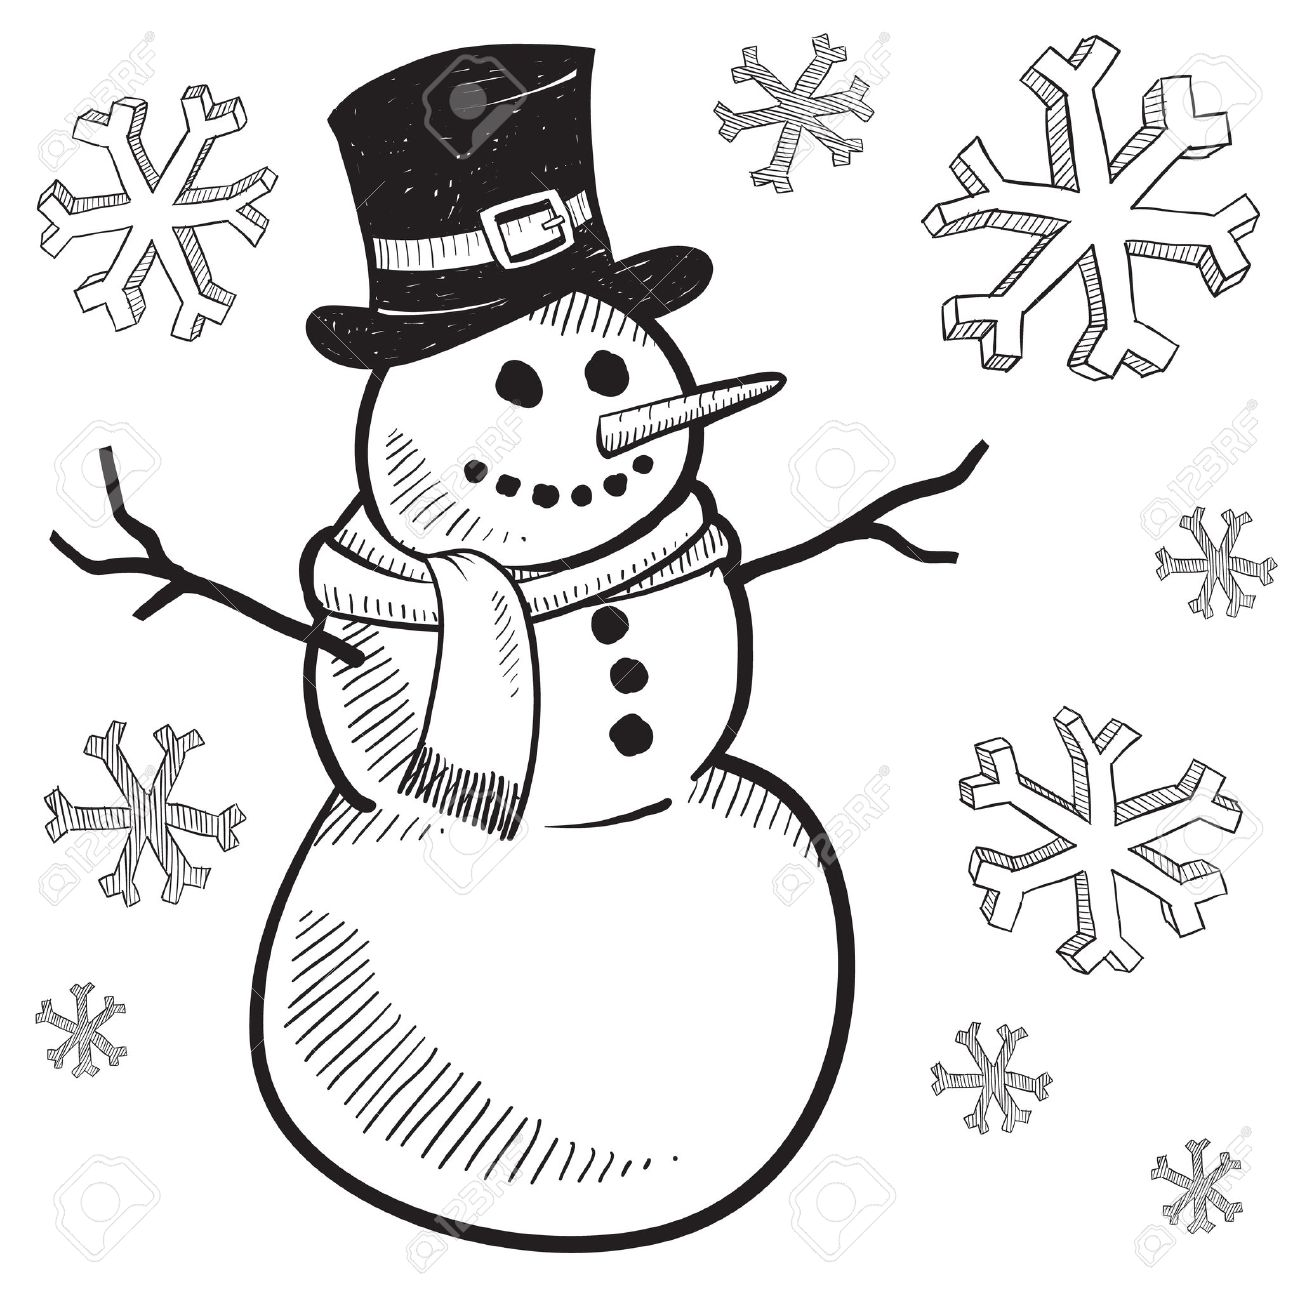 Winter holiday clipart black and white free clip royalty free library Winter Holiday Clipart Black And White clip royalty free library